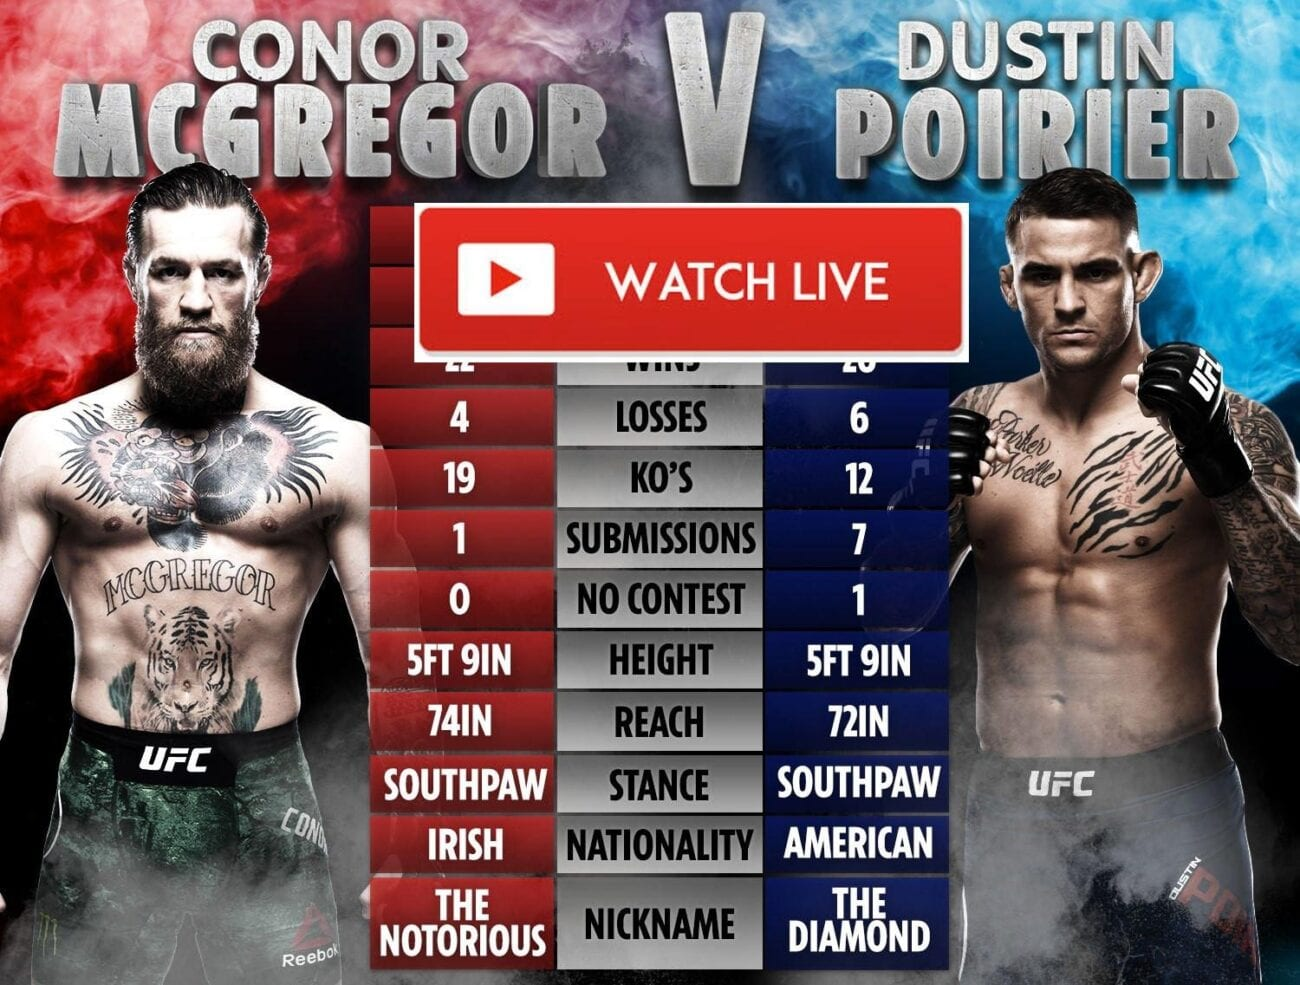 Conor McGregor vs. Dustin Poirier is taking place at UFC 257 on Saturday. Check out the best ways to stream this epic fight in the octagon.